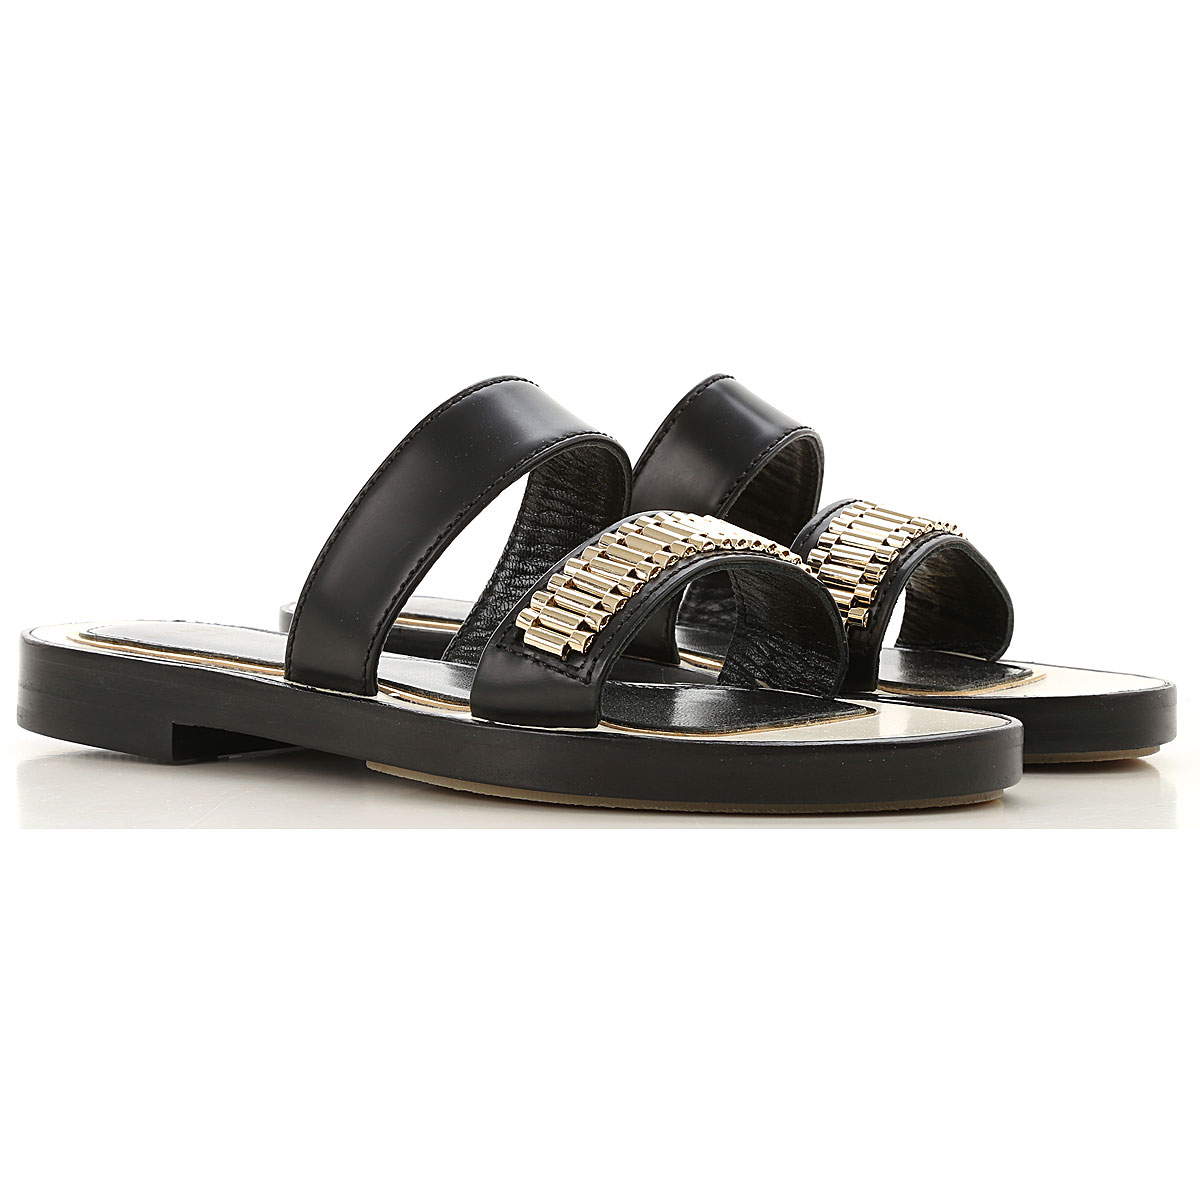 Lanvin Sandals for Women On Sale in Outlet, Black, Leather, 2019, 6 7